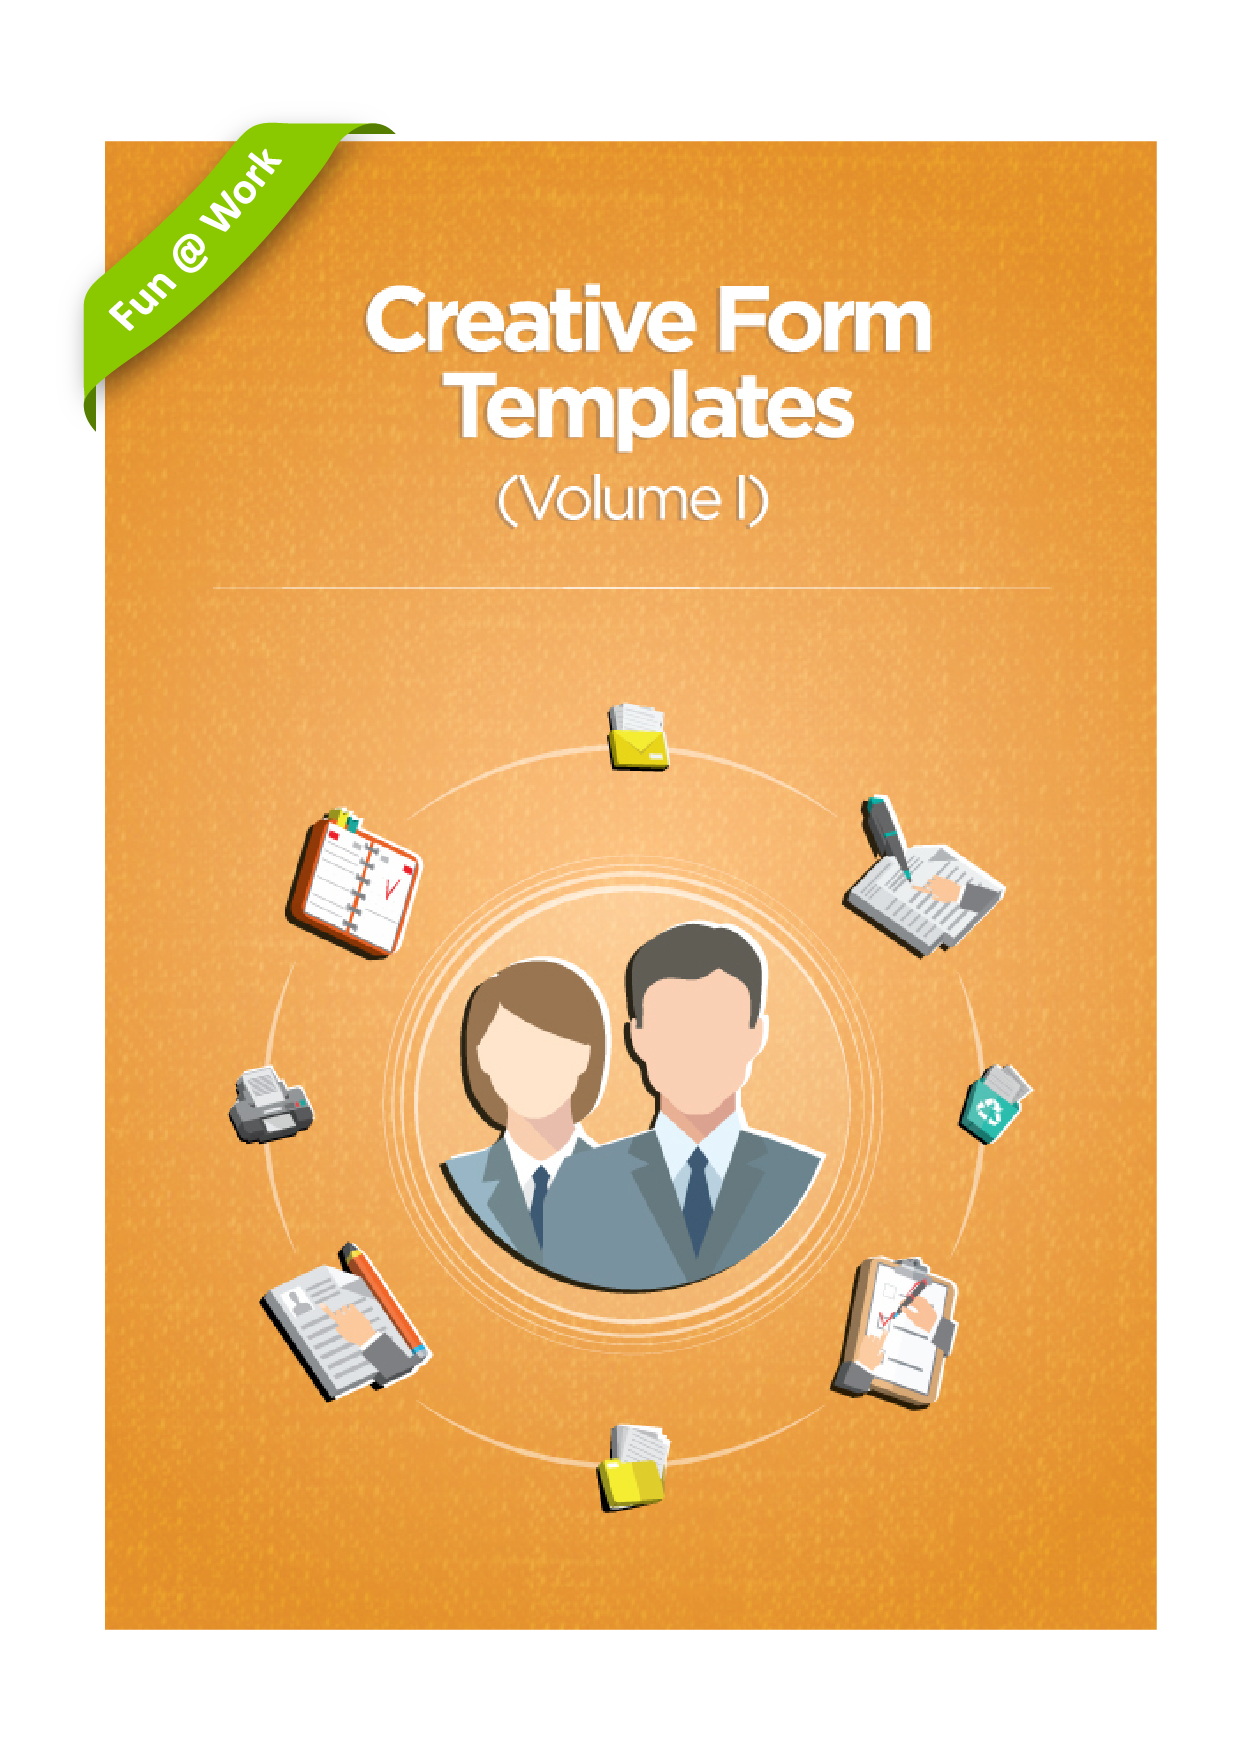 Creative-Form-Templates 1